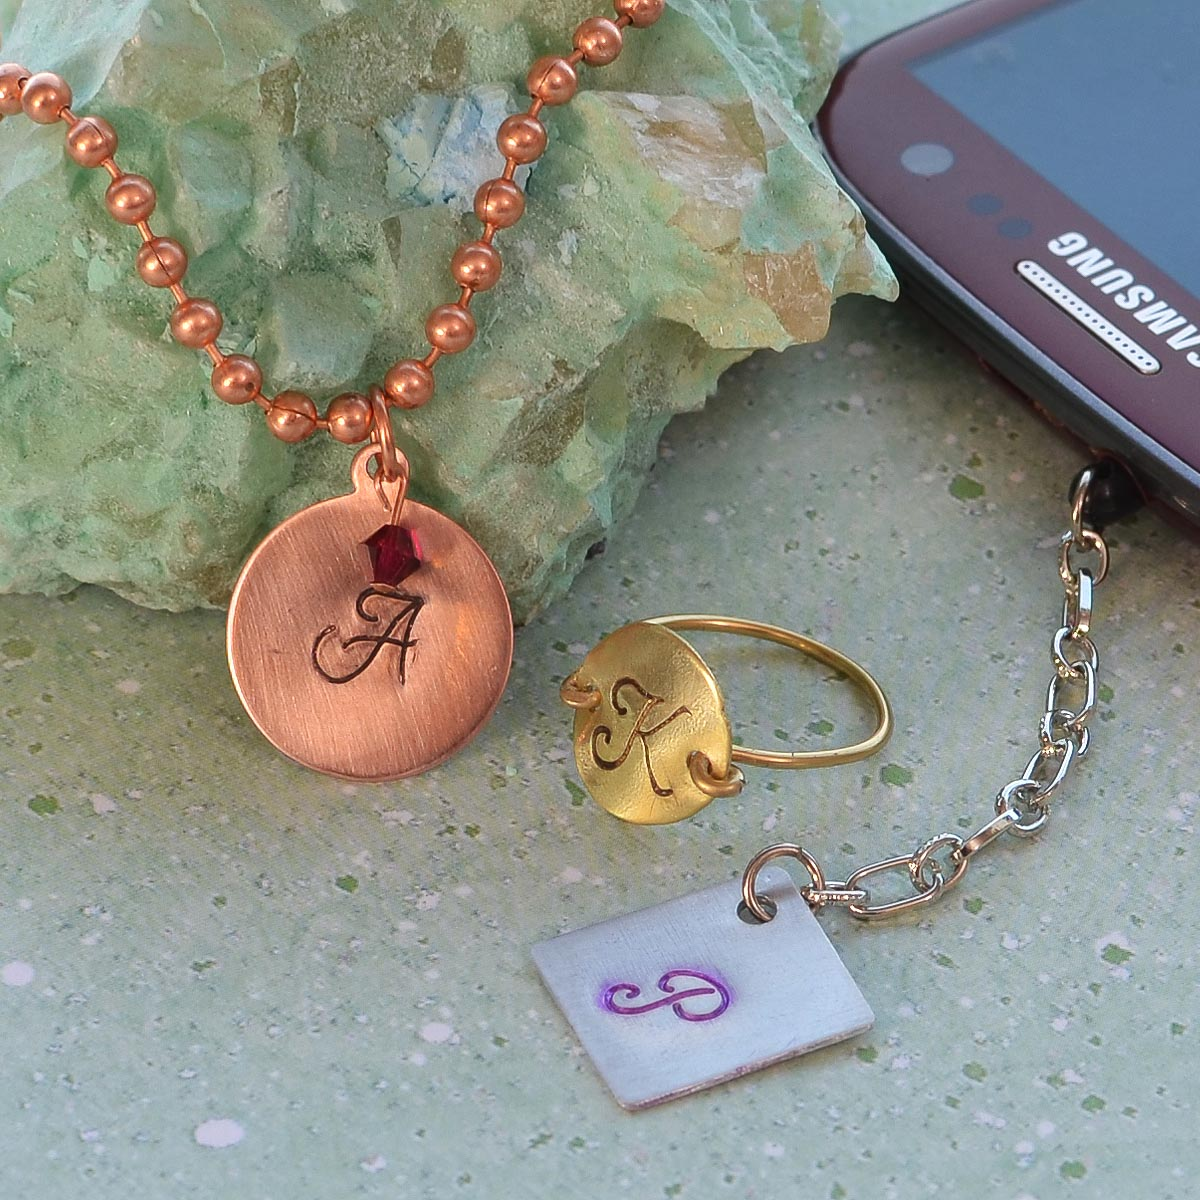 How To Make Personalized Stamped Charms